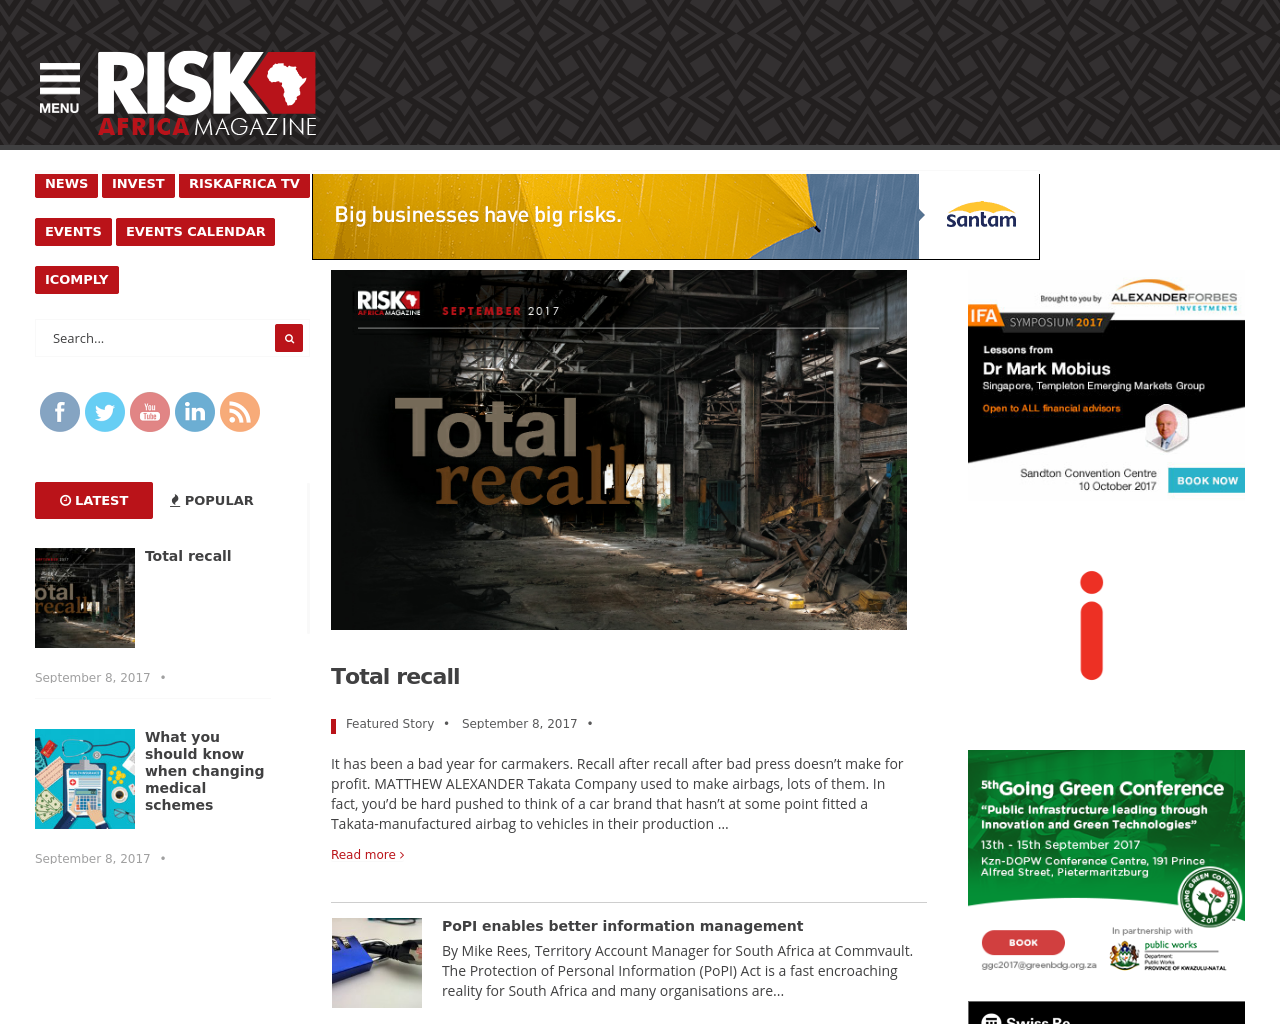 RISKSA-Magazine-Advertising-Reviews-Pricing